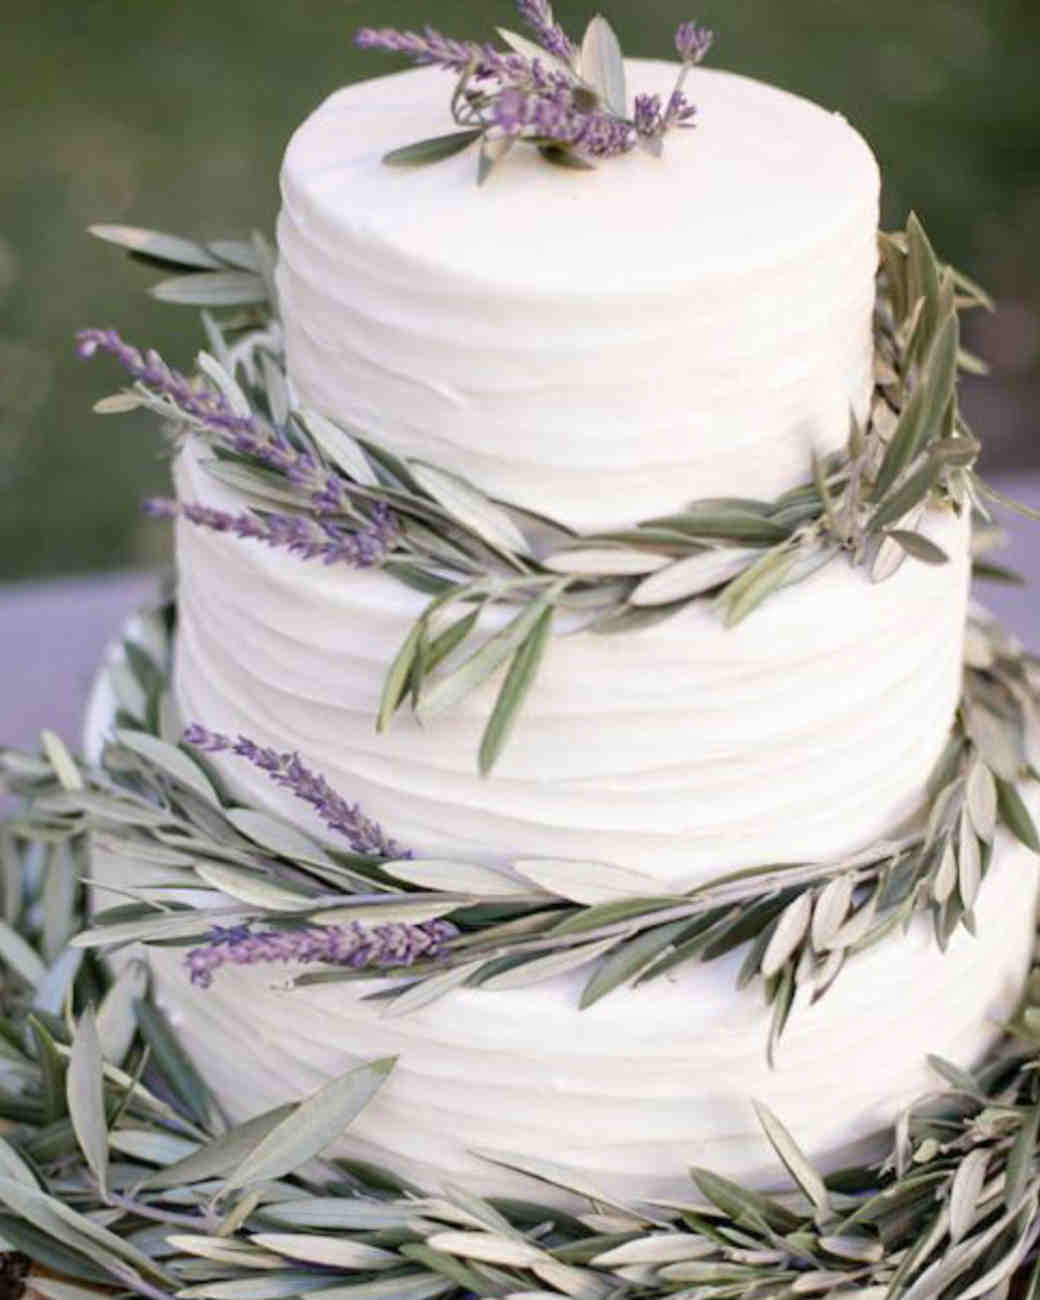 Vegan Wedding Cake Flavors